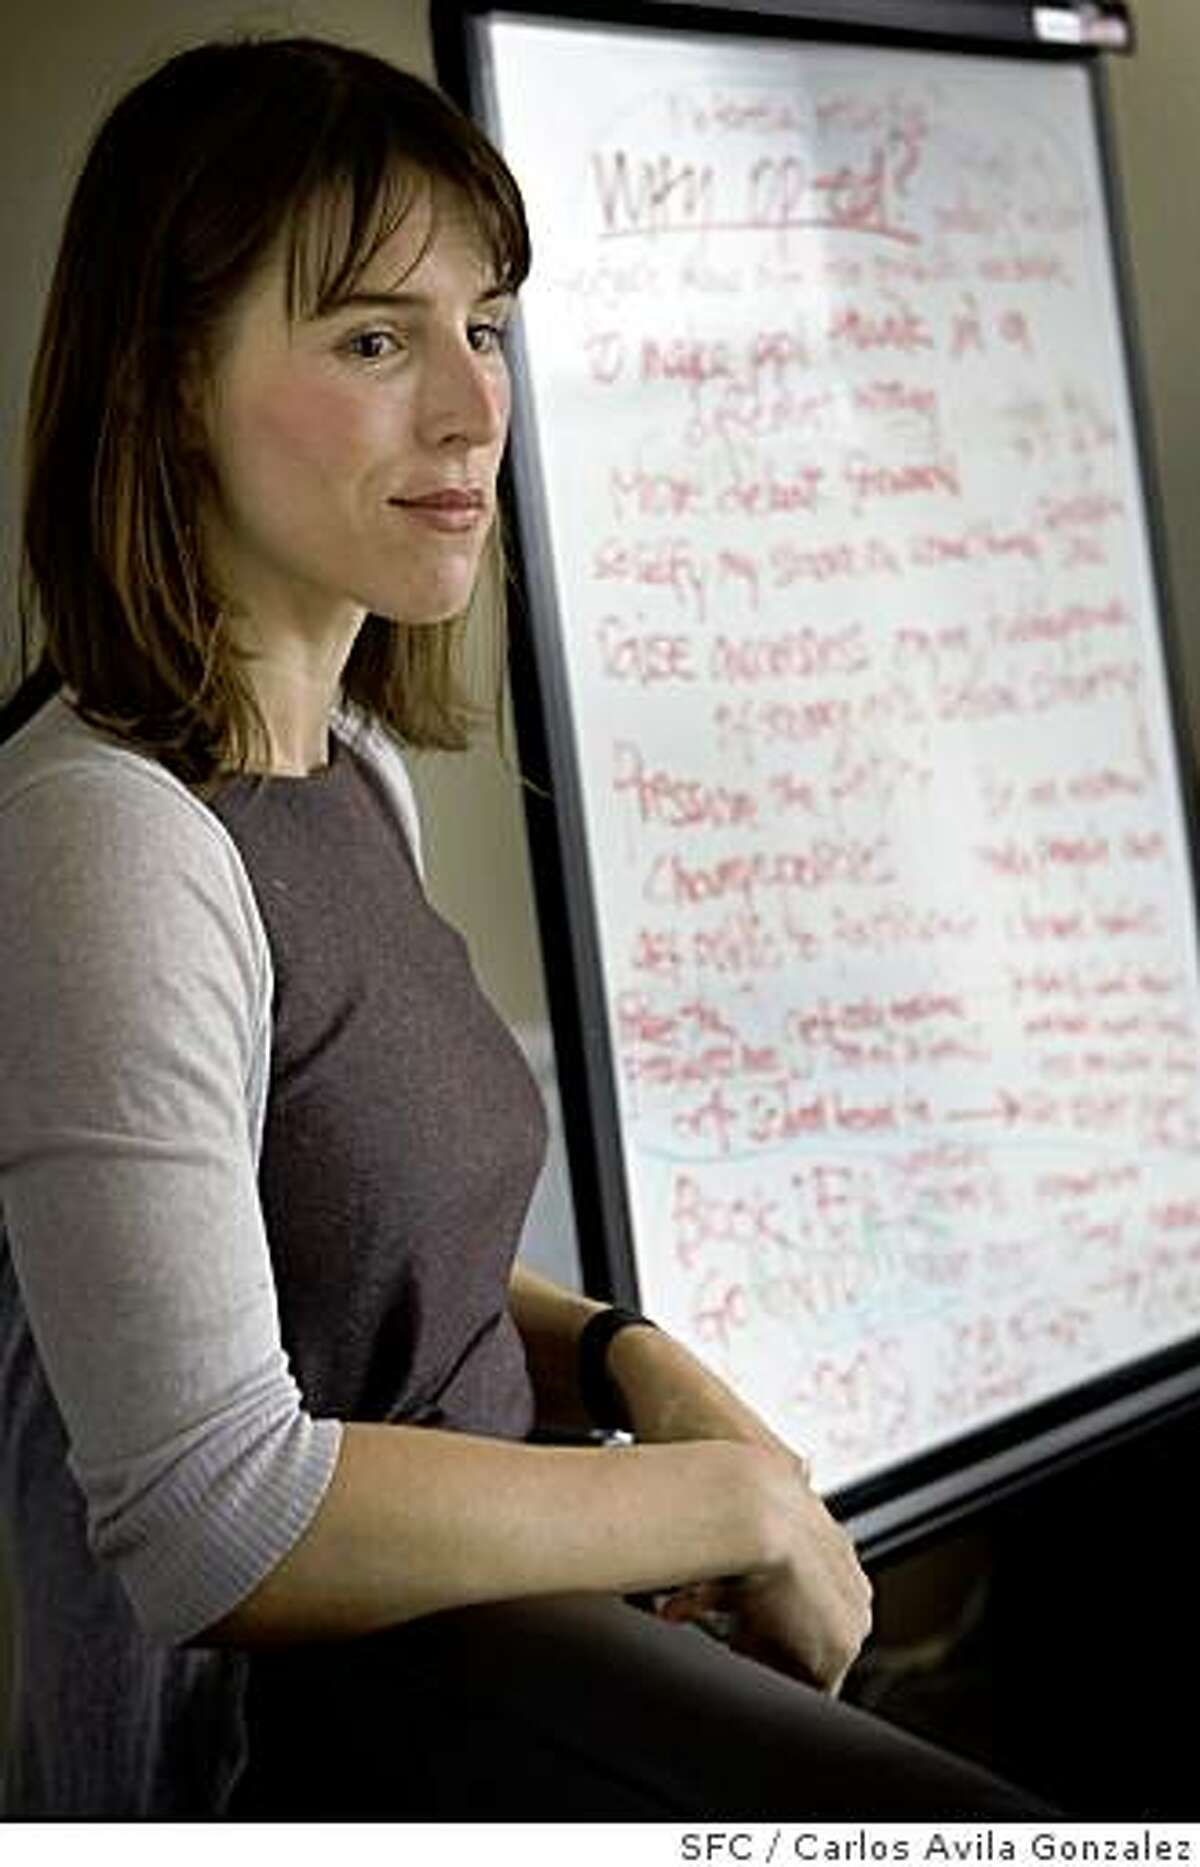 Journalist and author Catherine Orenstein, who started an organization called the Op-Ed project, conducts a bi-monthly seminar that teaches women how to write for Op-Ed pages. Here, she speaks to a group of 6 women in San Francisco, Calif., on Sunday, June 15, 2008.Photo by Carlos Avila Gonzalez / The Chronicle